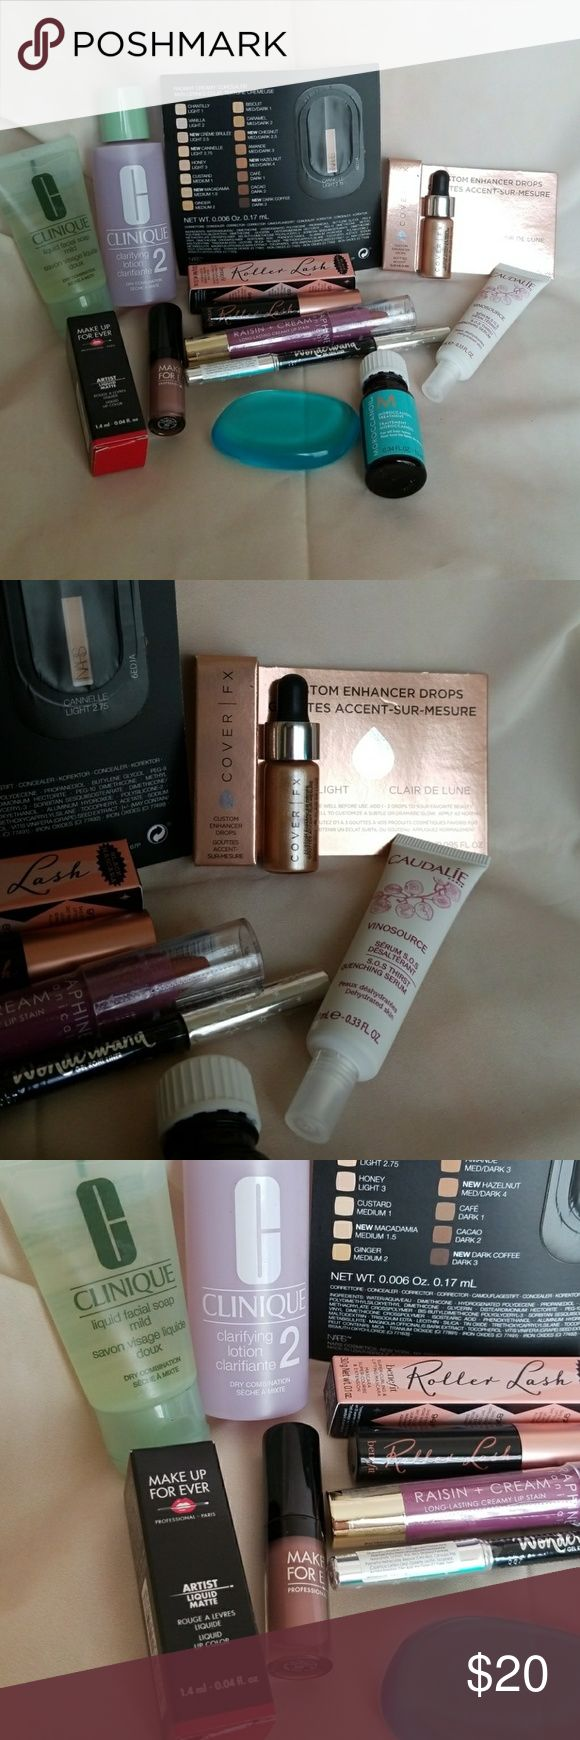 Name brand makeup bundle/lot Lot includes: Make Up For Ever Liquid Matte lip color in 105 Benefit Roller Lash mascara Cover FX Custom Enhancer Drops in Moonlight Full sized Seraphine Botanicals creamy lip stain in Raisin Full sized Ciate Wonderwand in black NARS foundation sample in Cannelle Light 2.75 Clinique liquid facial soap in mild and clarifying lotion in #2 Caudalie Vinosource Thirst Quenching Serum Moroccanoil Moroccan oil treatment for all hair types Silicone applicator All items…